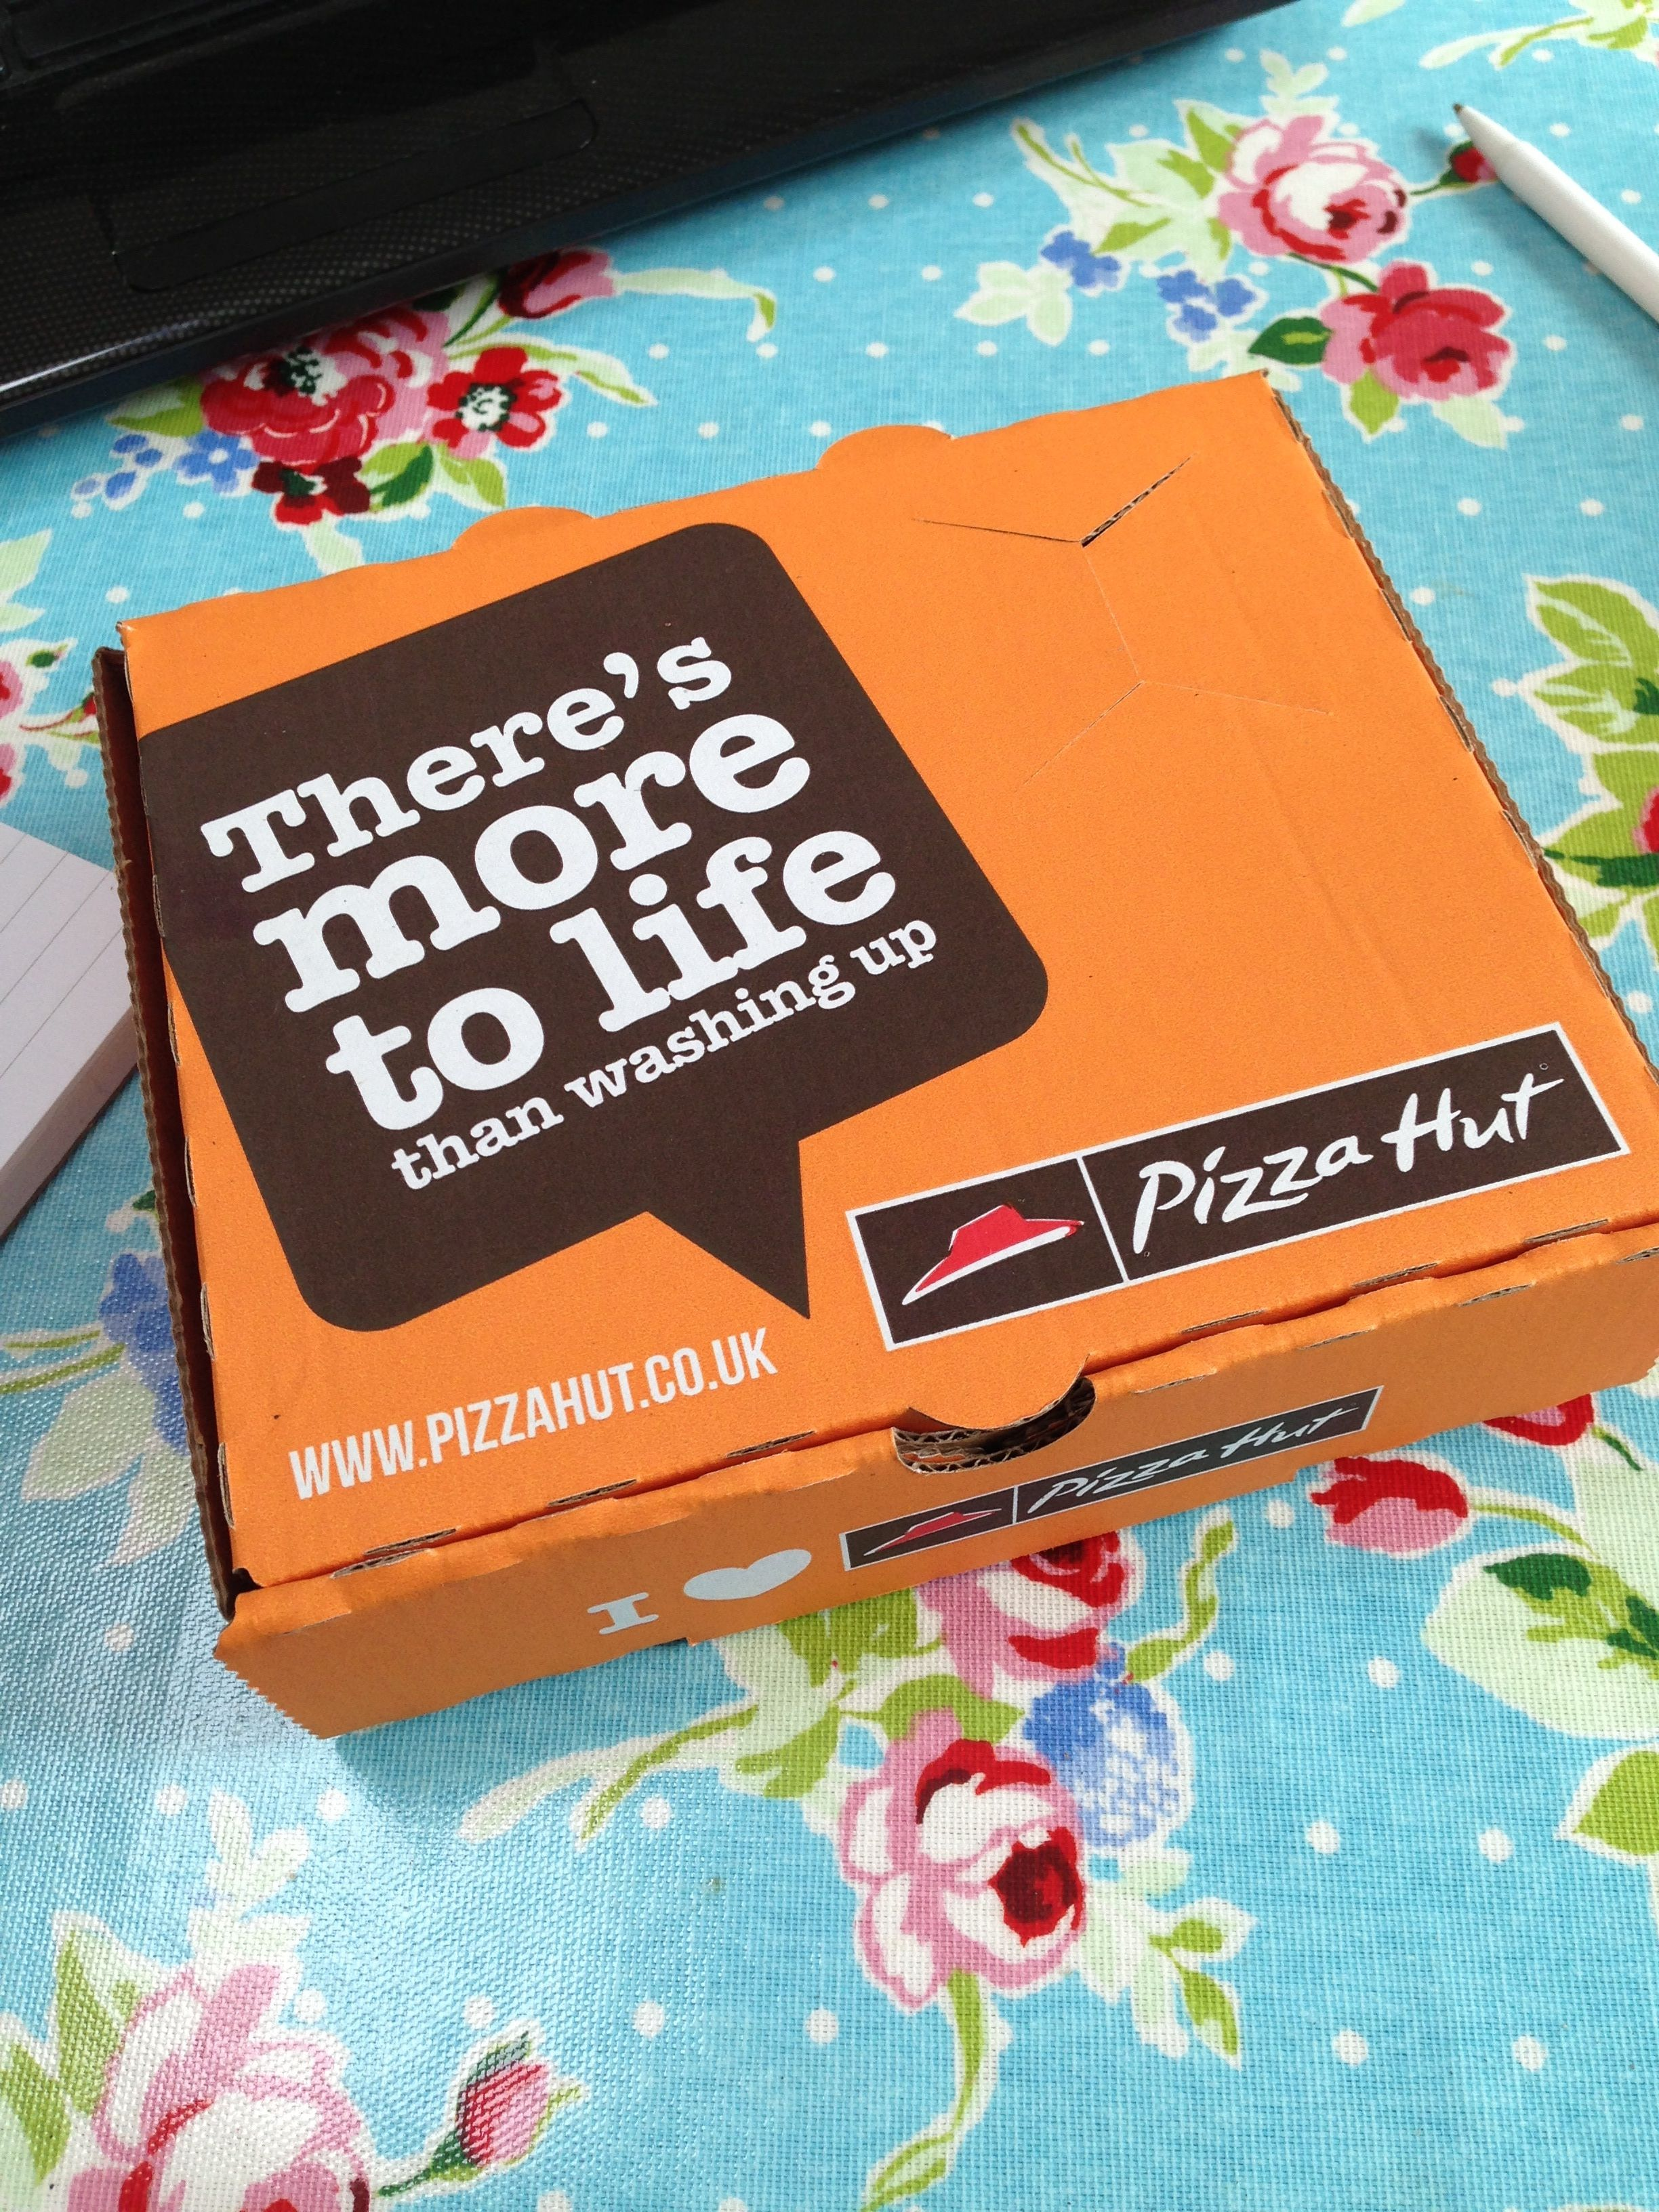 Pizza Hut pizza is the best kind of pizza